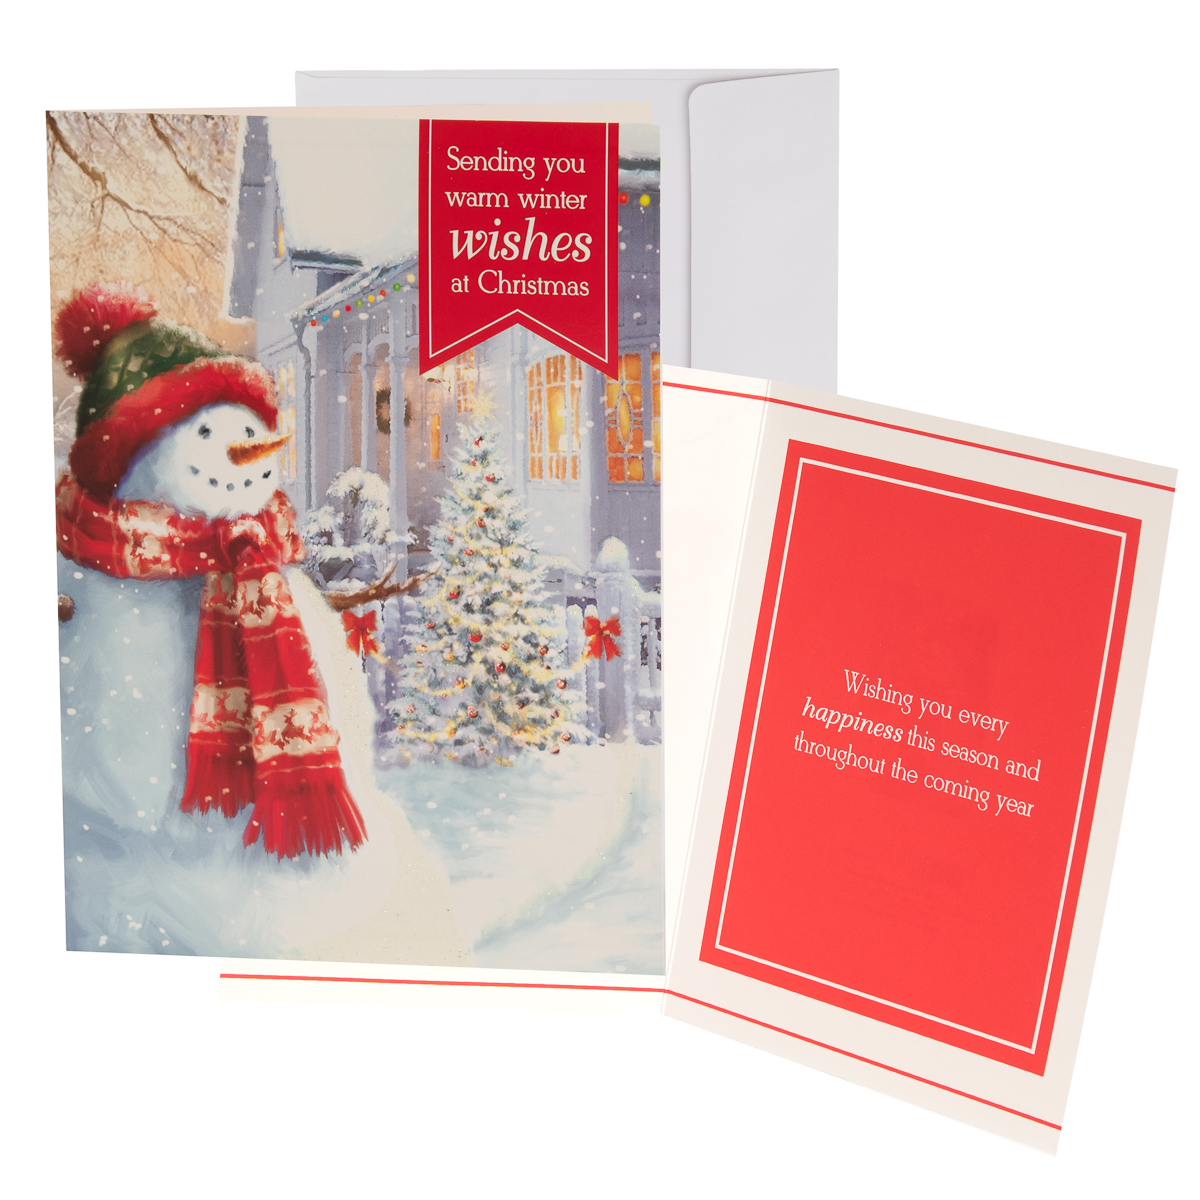 48pk-Merry-Christmas-Cards-Bulk-Assortment-Holiday-Card-Pack-with-Foil-amp-Glitter thumbnail 31